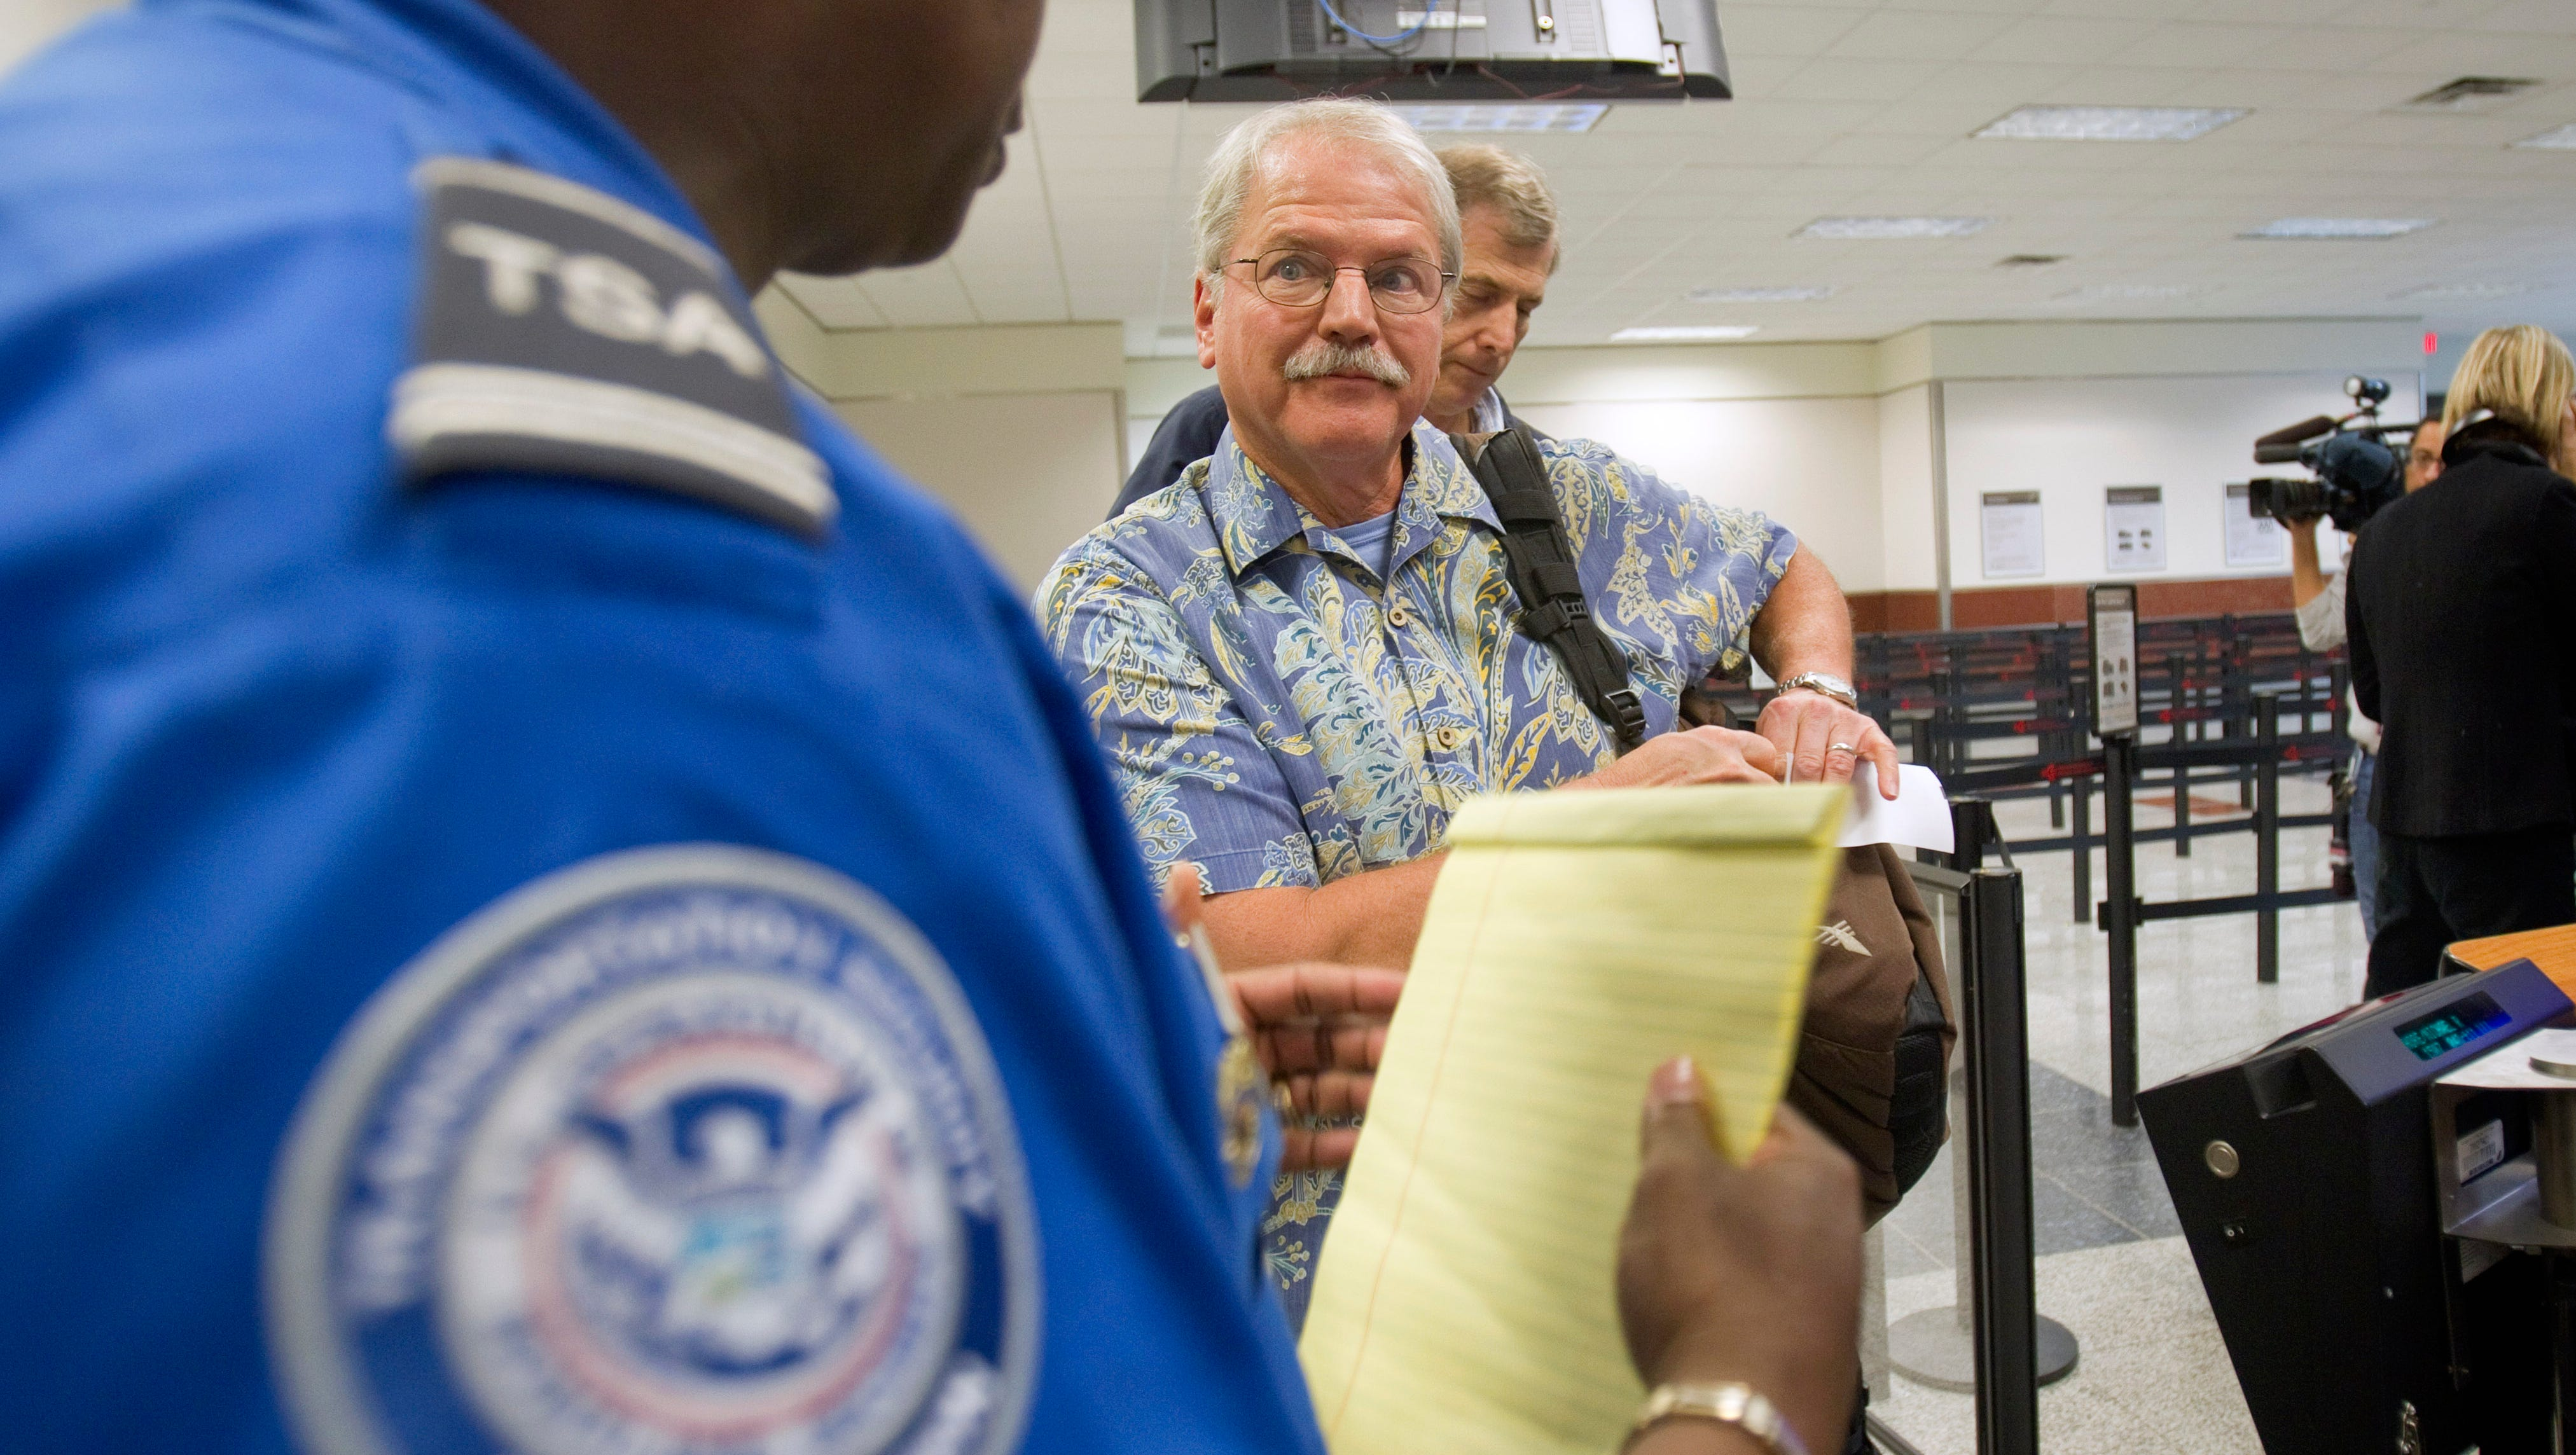 Don Heim of Alpharetta, Ga., is briefed by Transportation Security Administration trainer Byron Gibson before going through security at Hartsfield-Jackson International Airport in Atlanta in 2011.  Airport workers are on the front lines in screening passengers in light of the Ebola outbreak.